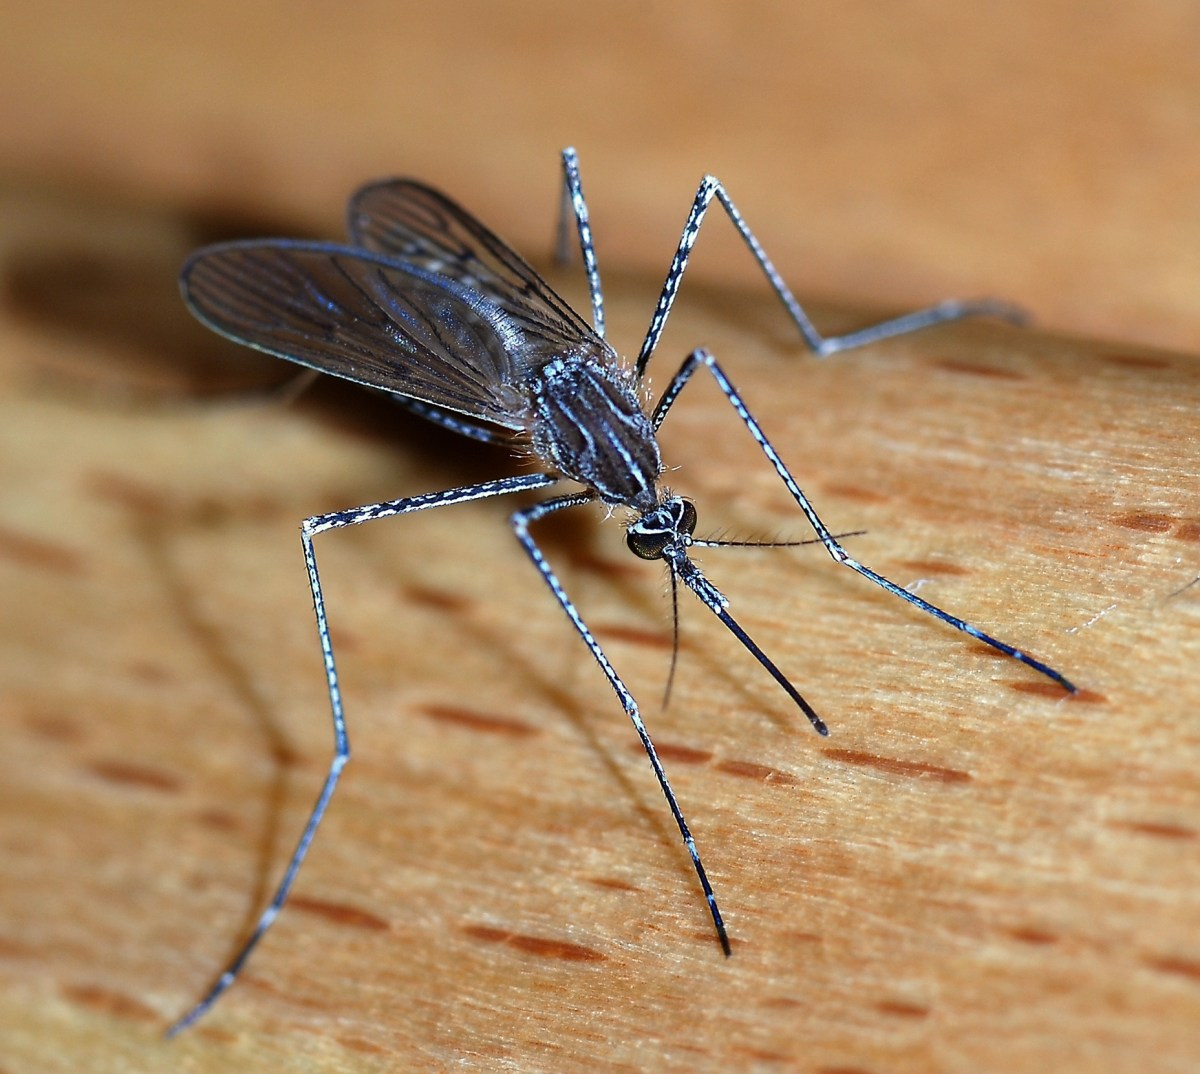 Florida Man Outraged After Agreeing To Mutant Mosquito Infestation | Boing Boing